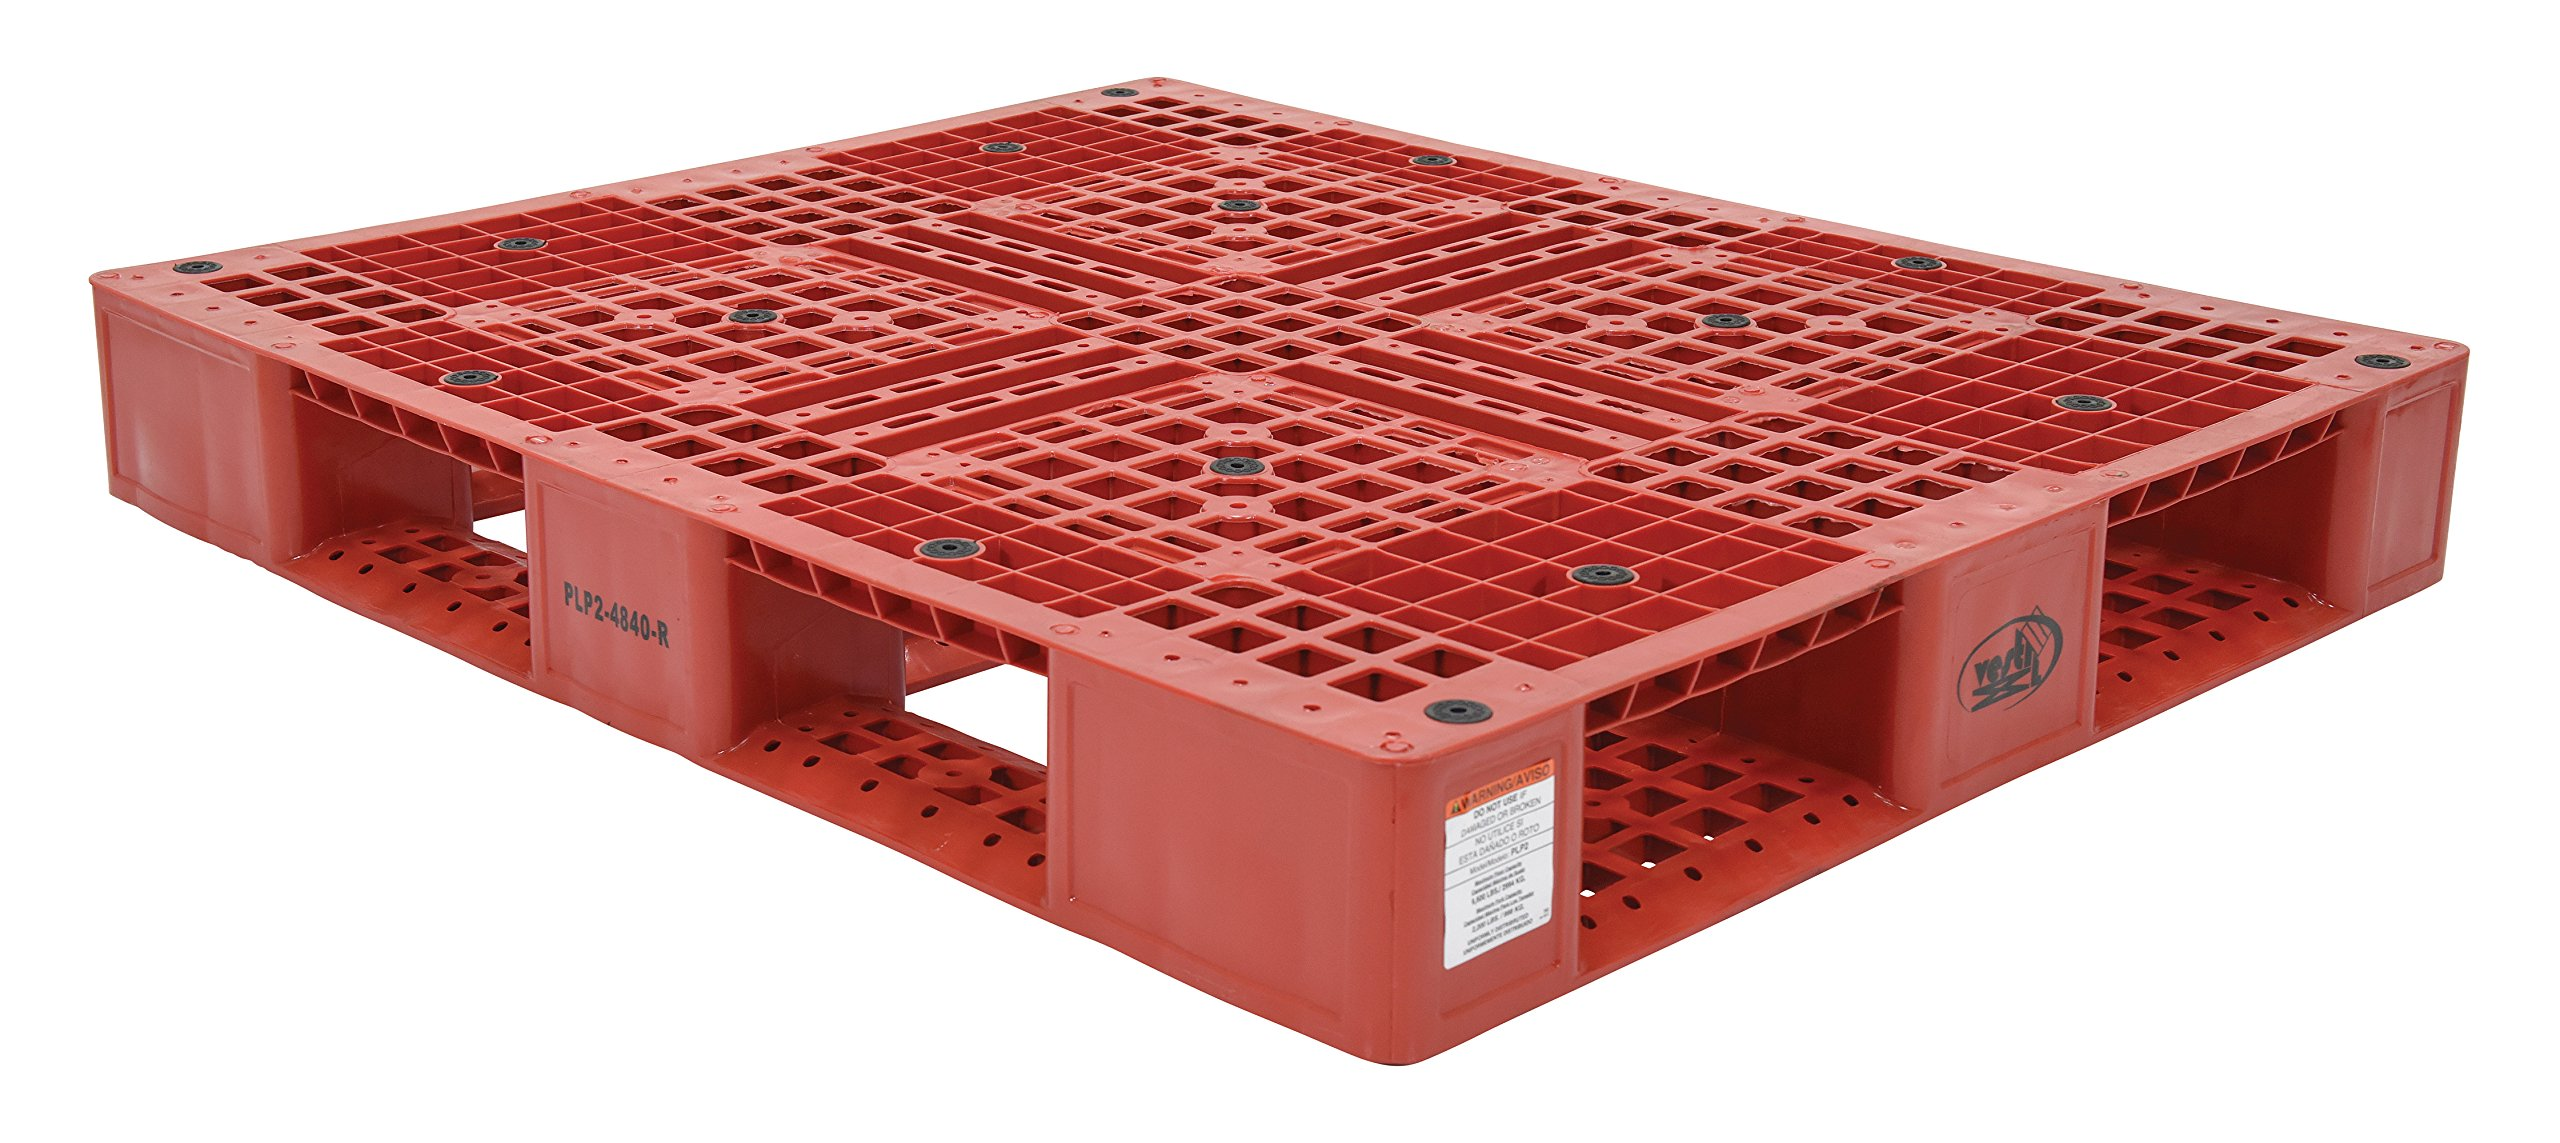 Vestil PLP2-4840-RED Red Polyethylene Pallet with 4 Way Entry, 6600 lbs Capacity, 39.5'' Length, 47.375'' Width x 6'' Height